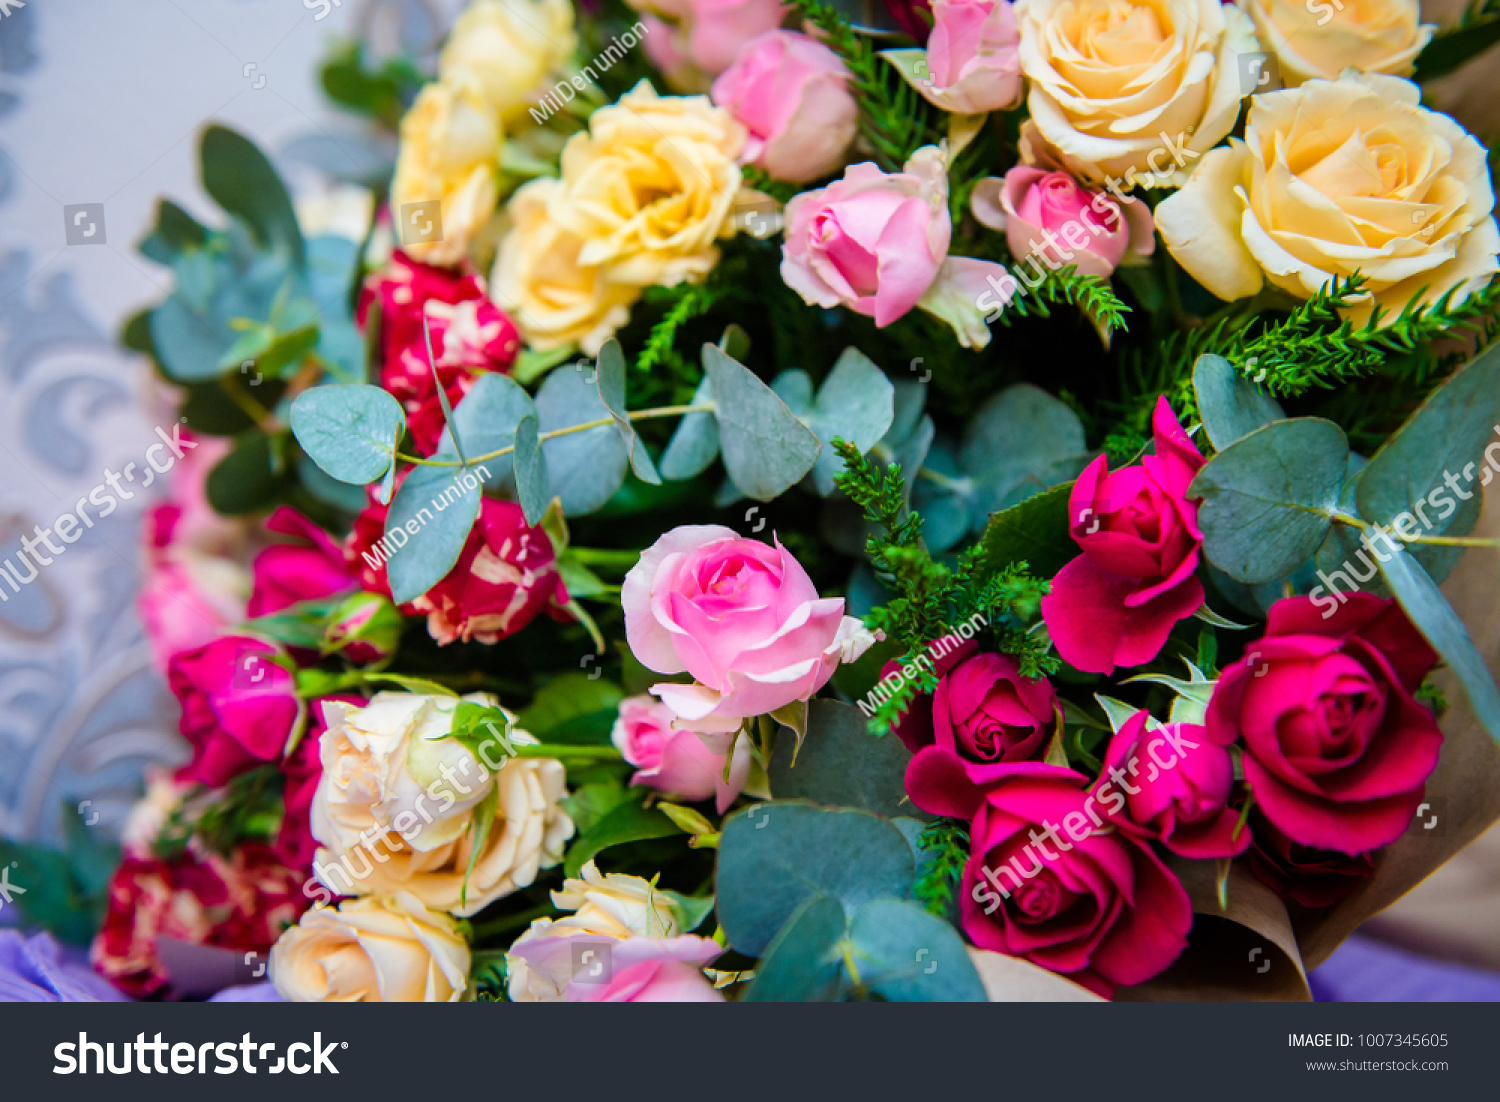 Colorful bouquet flowers stock photo edit now 1007345605 colorful bouquet of flowers izmirmasajfo